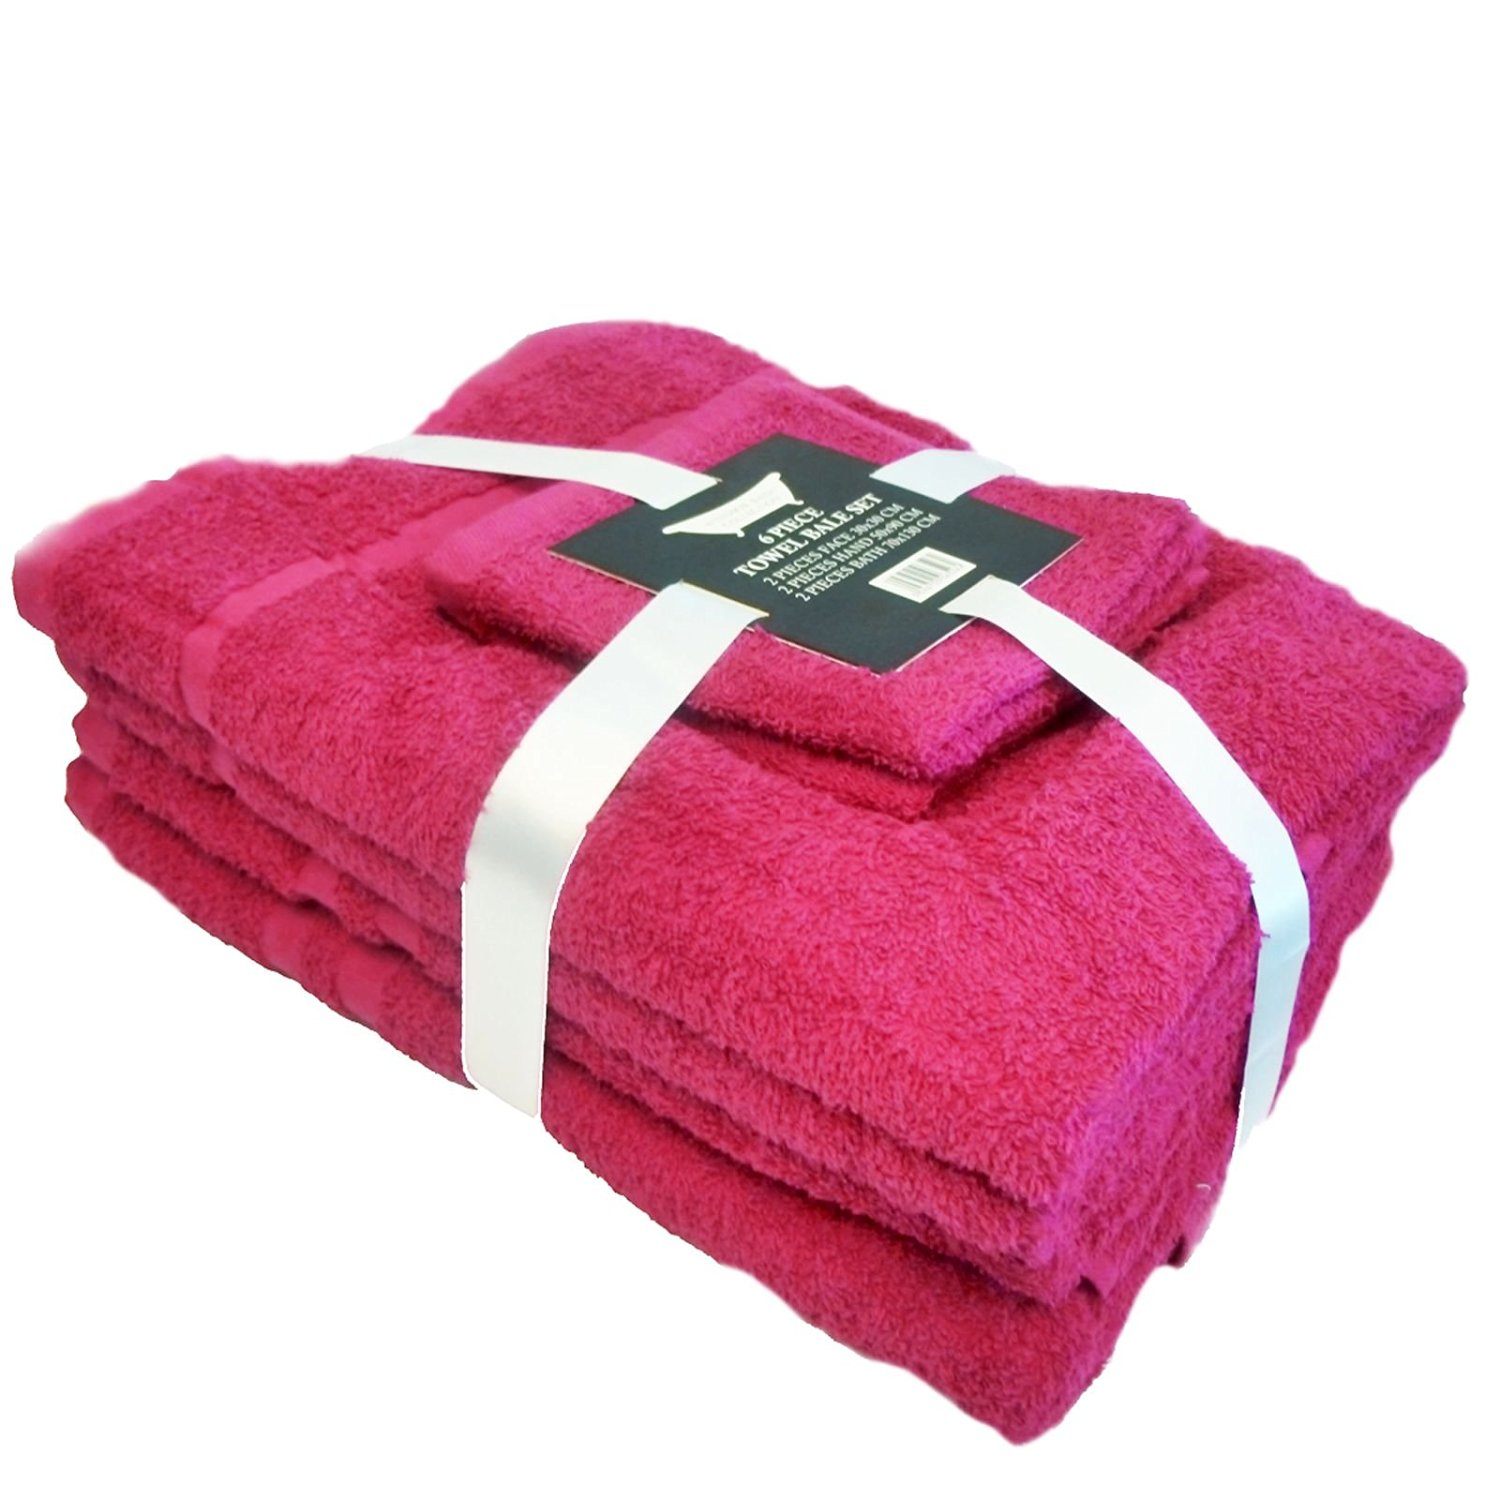 Towel Bale 6 piece (2 face, 2 hand, 2 bath) 450gsm 100% Cotton - Hot Pink )